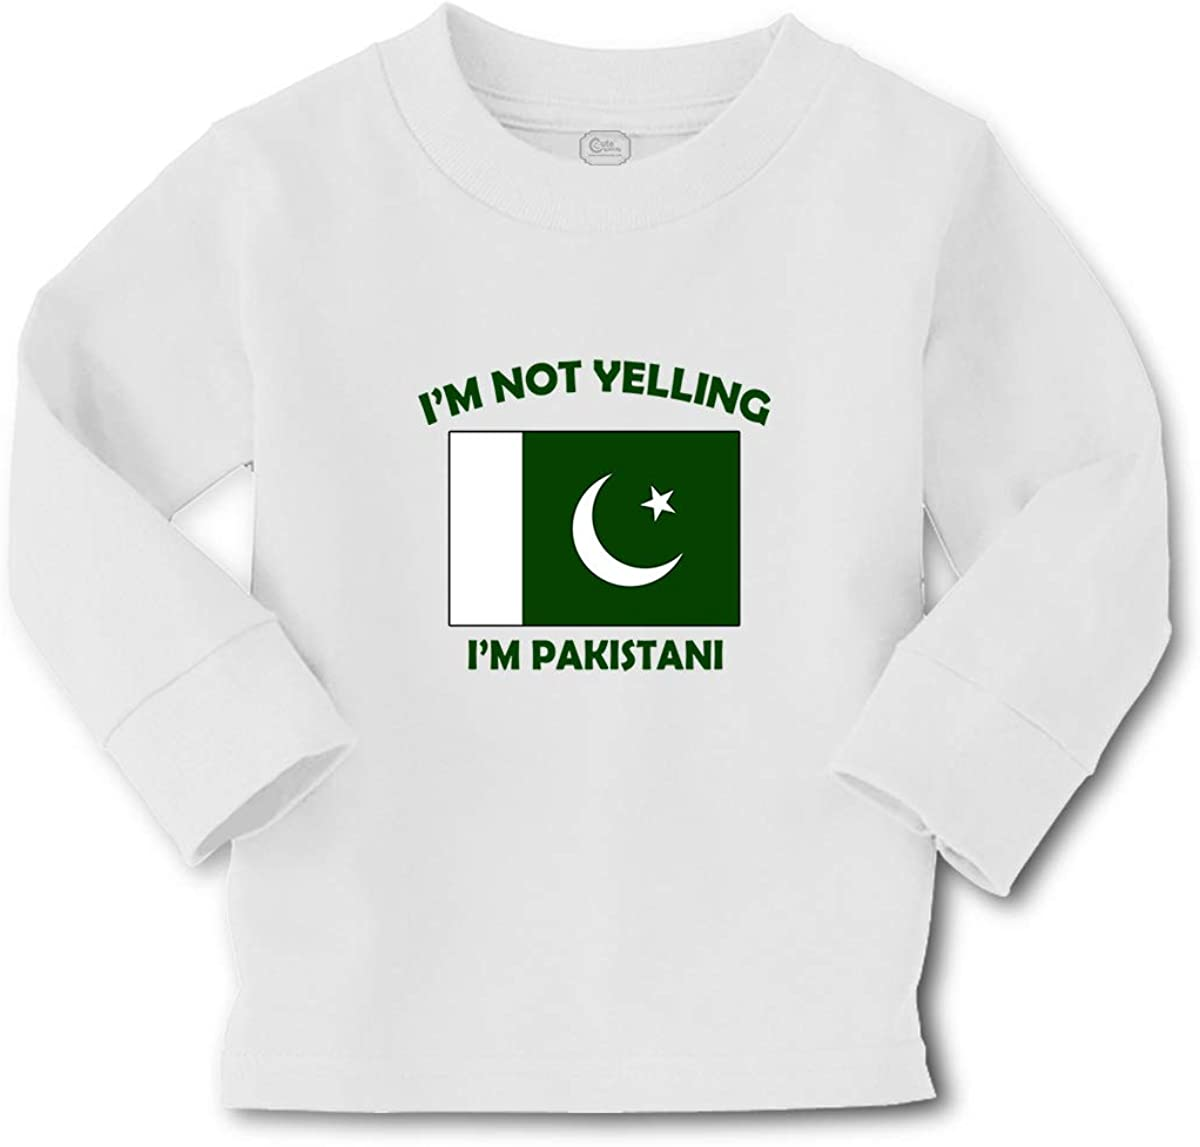 Kids Long Sleeve T Shirt I'm Not Yelling I Am Pakistanis Pakistan Countries Cotton Boy & Girl Clothes Funny Graphic Tee A White Design Only 2T